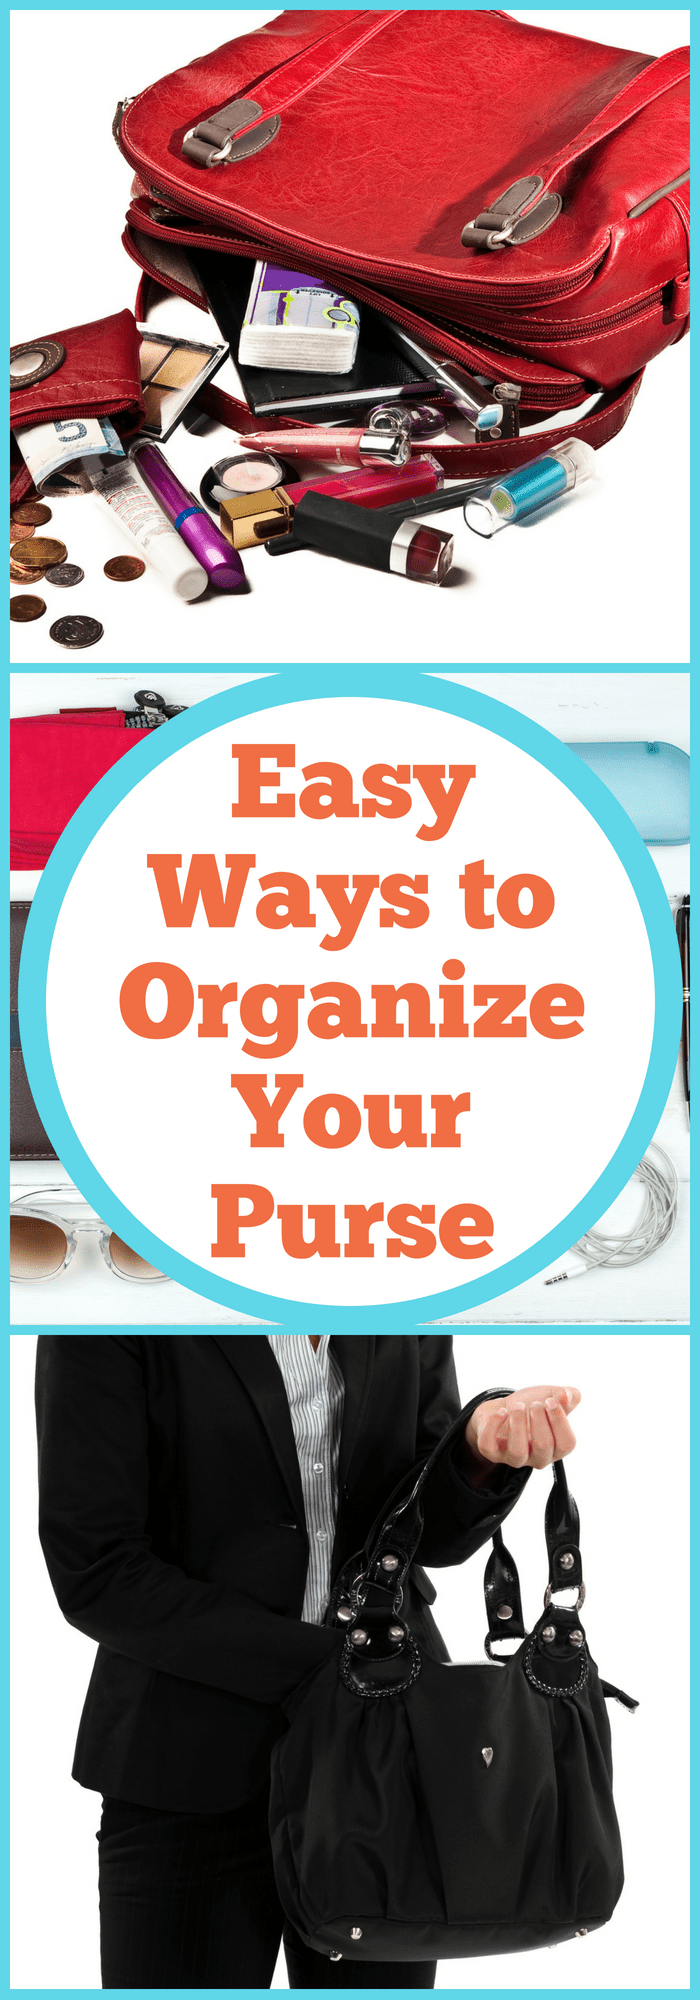 Easy Ways to Organize Your Purse